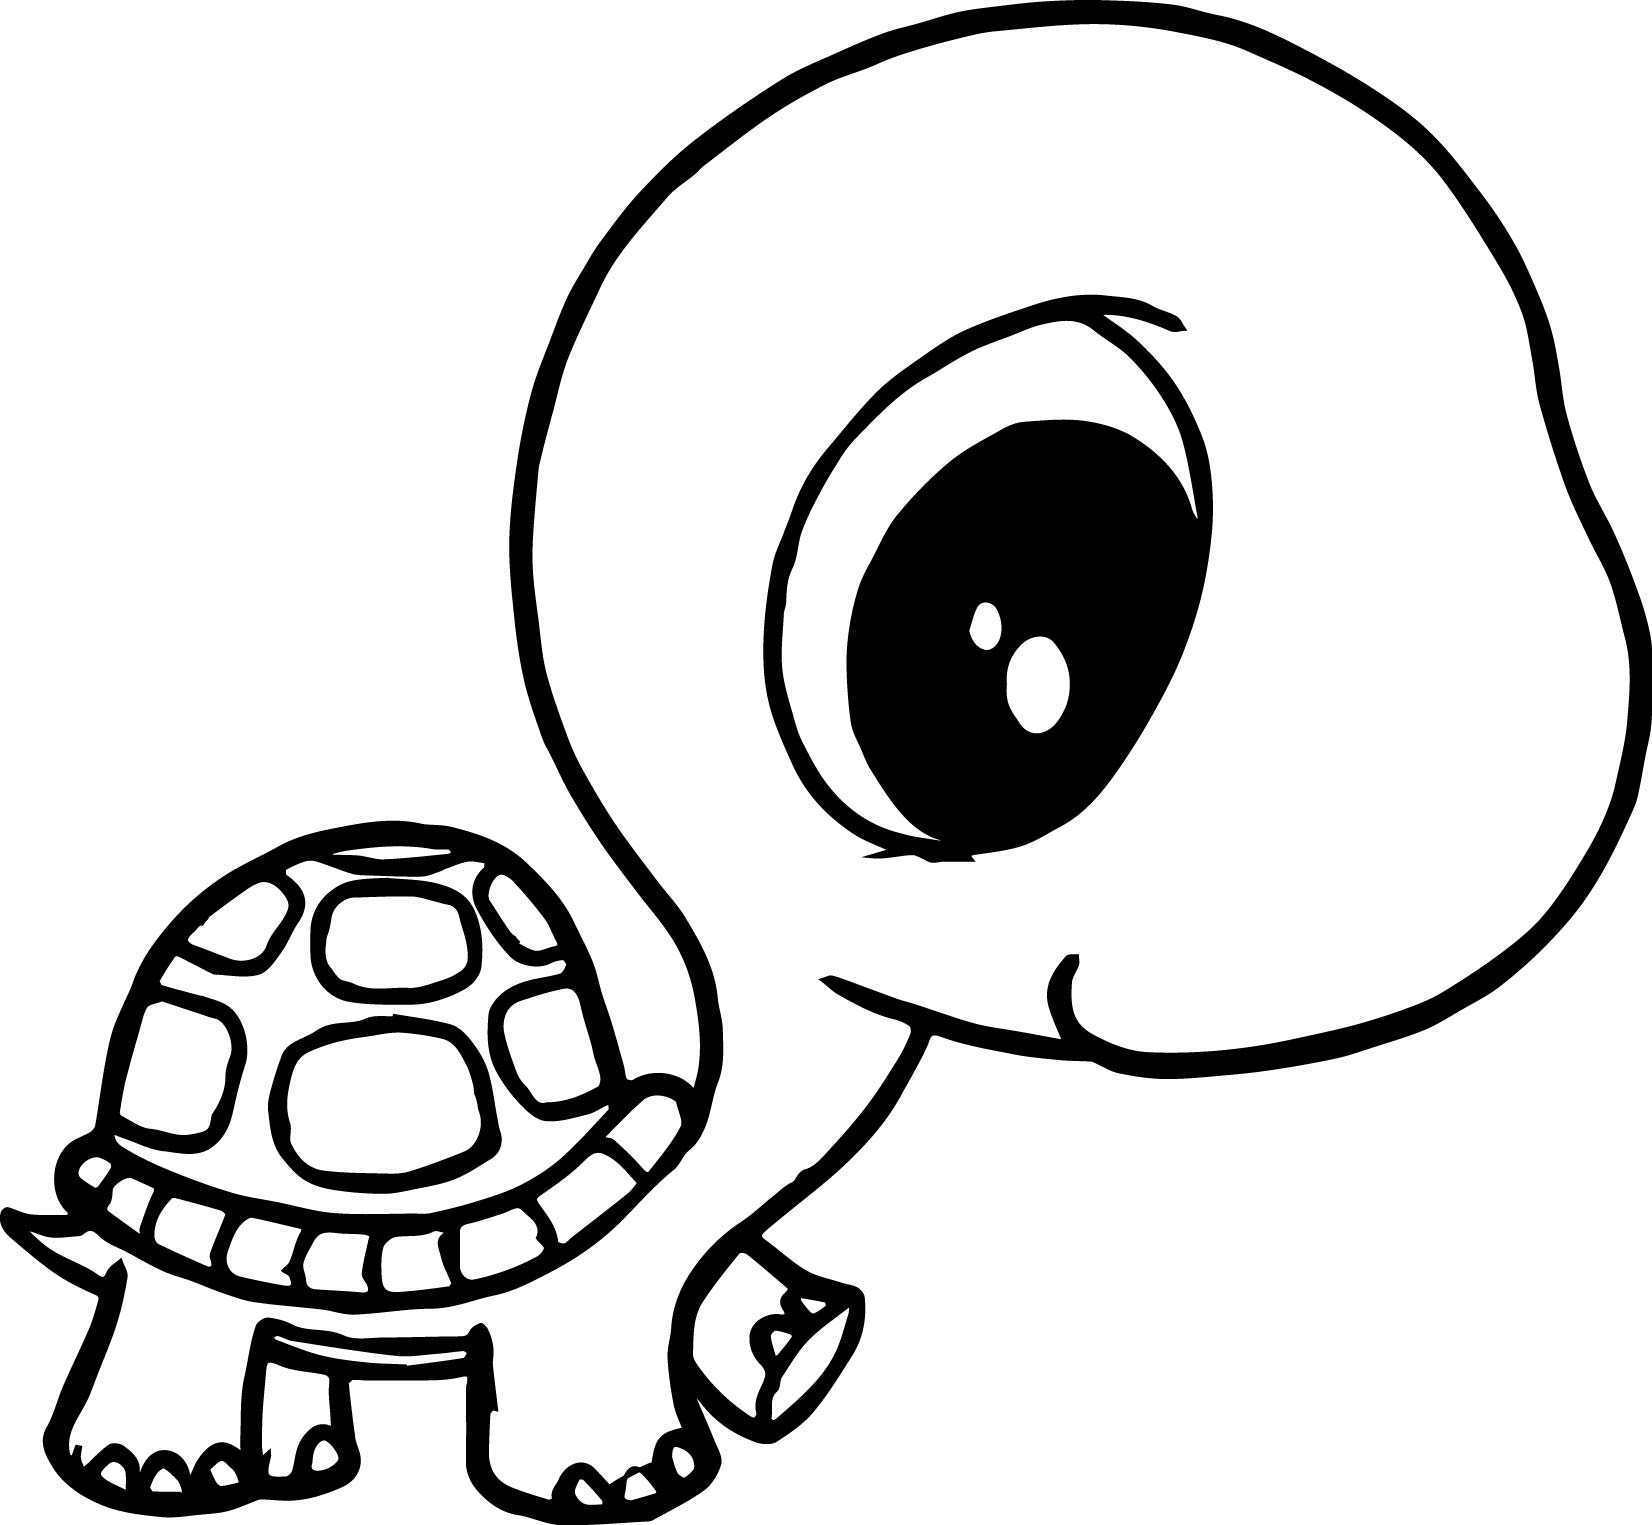 Turtle Coloring Pages Enchanting Big Head Small Body Tortoise Turtle Coloring Page  Wecoloringpage Decorating Inspiration